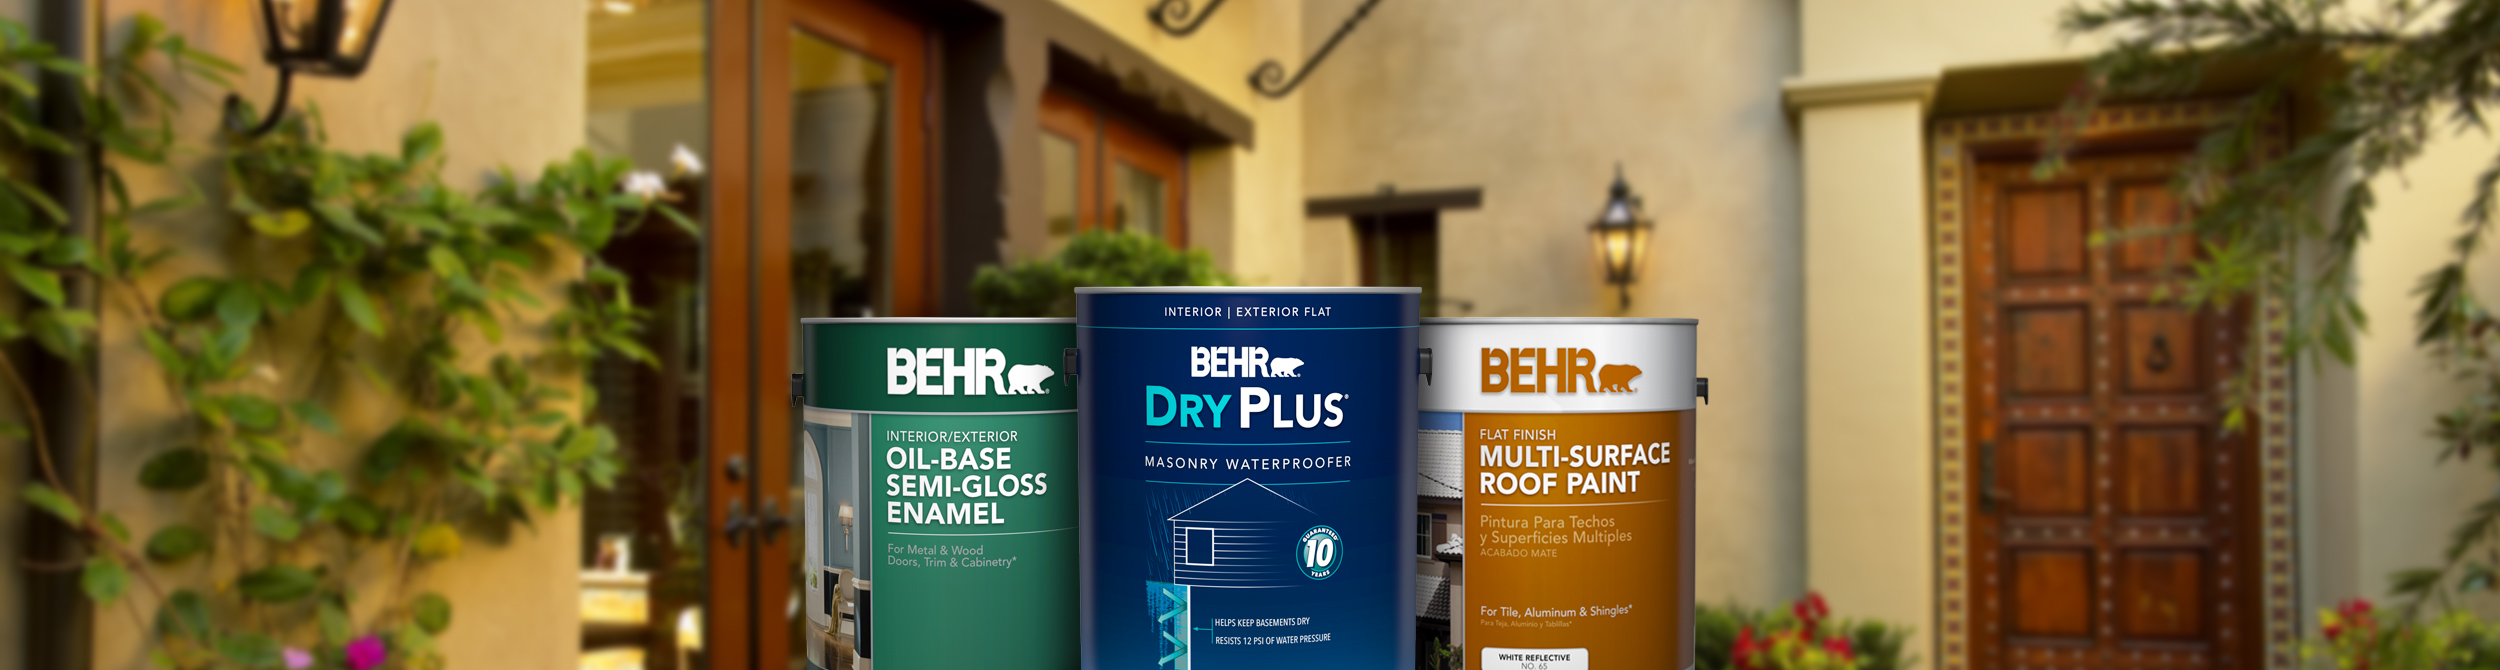 Three cans of Behr paint and front side view of home with greenery in the background